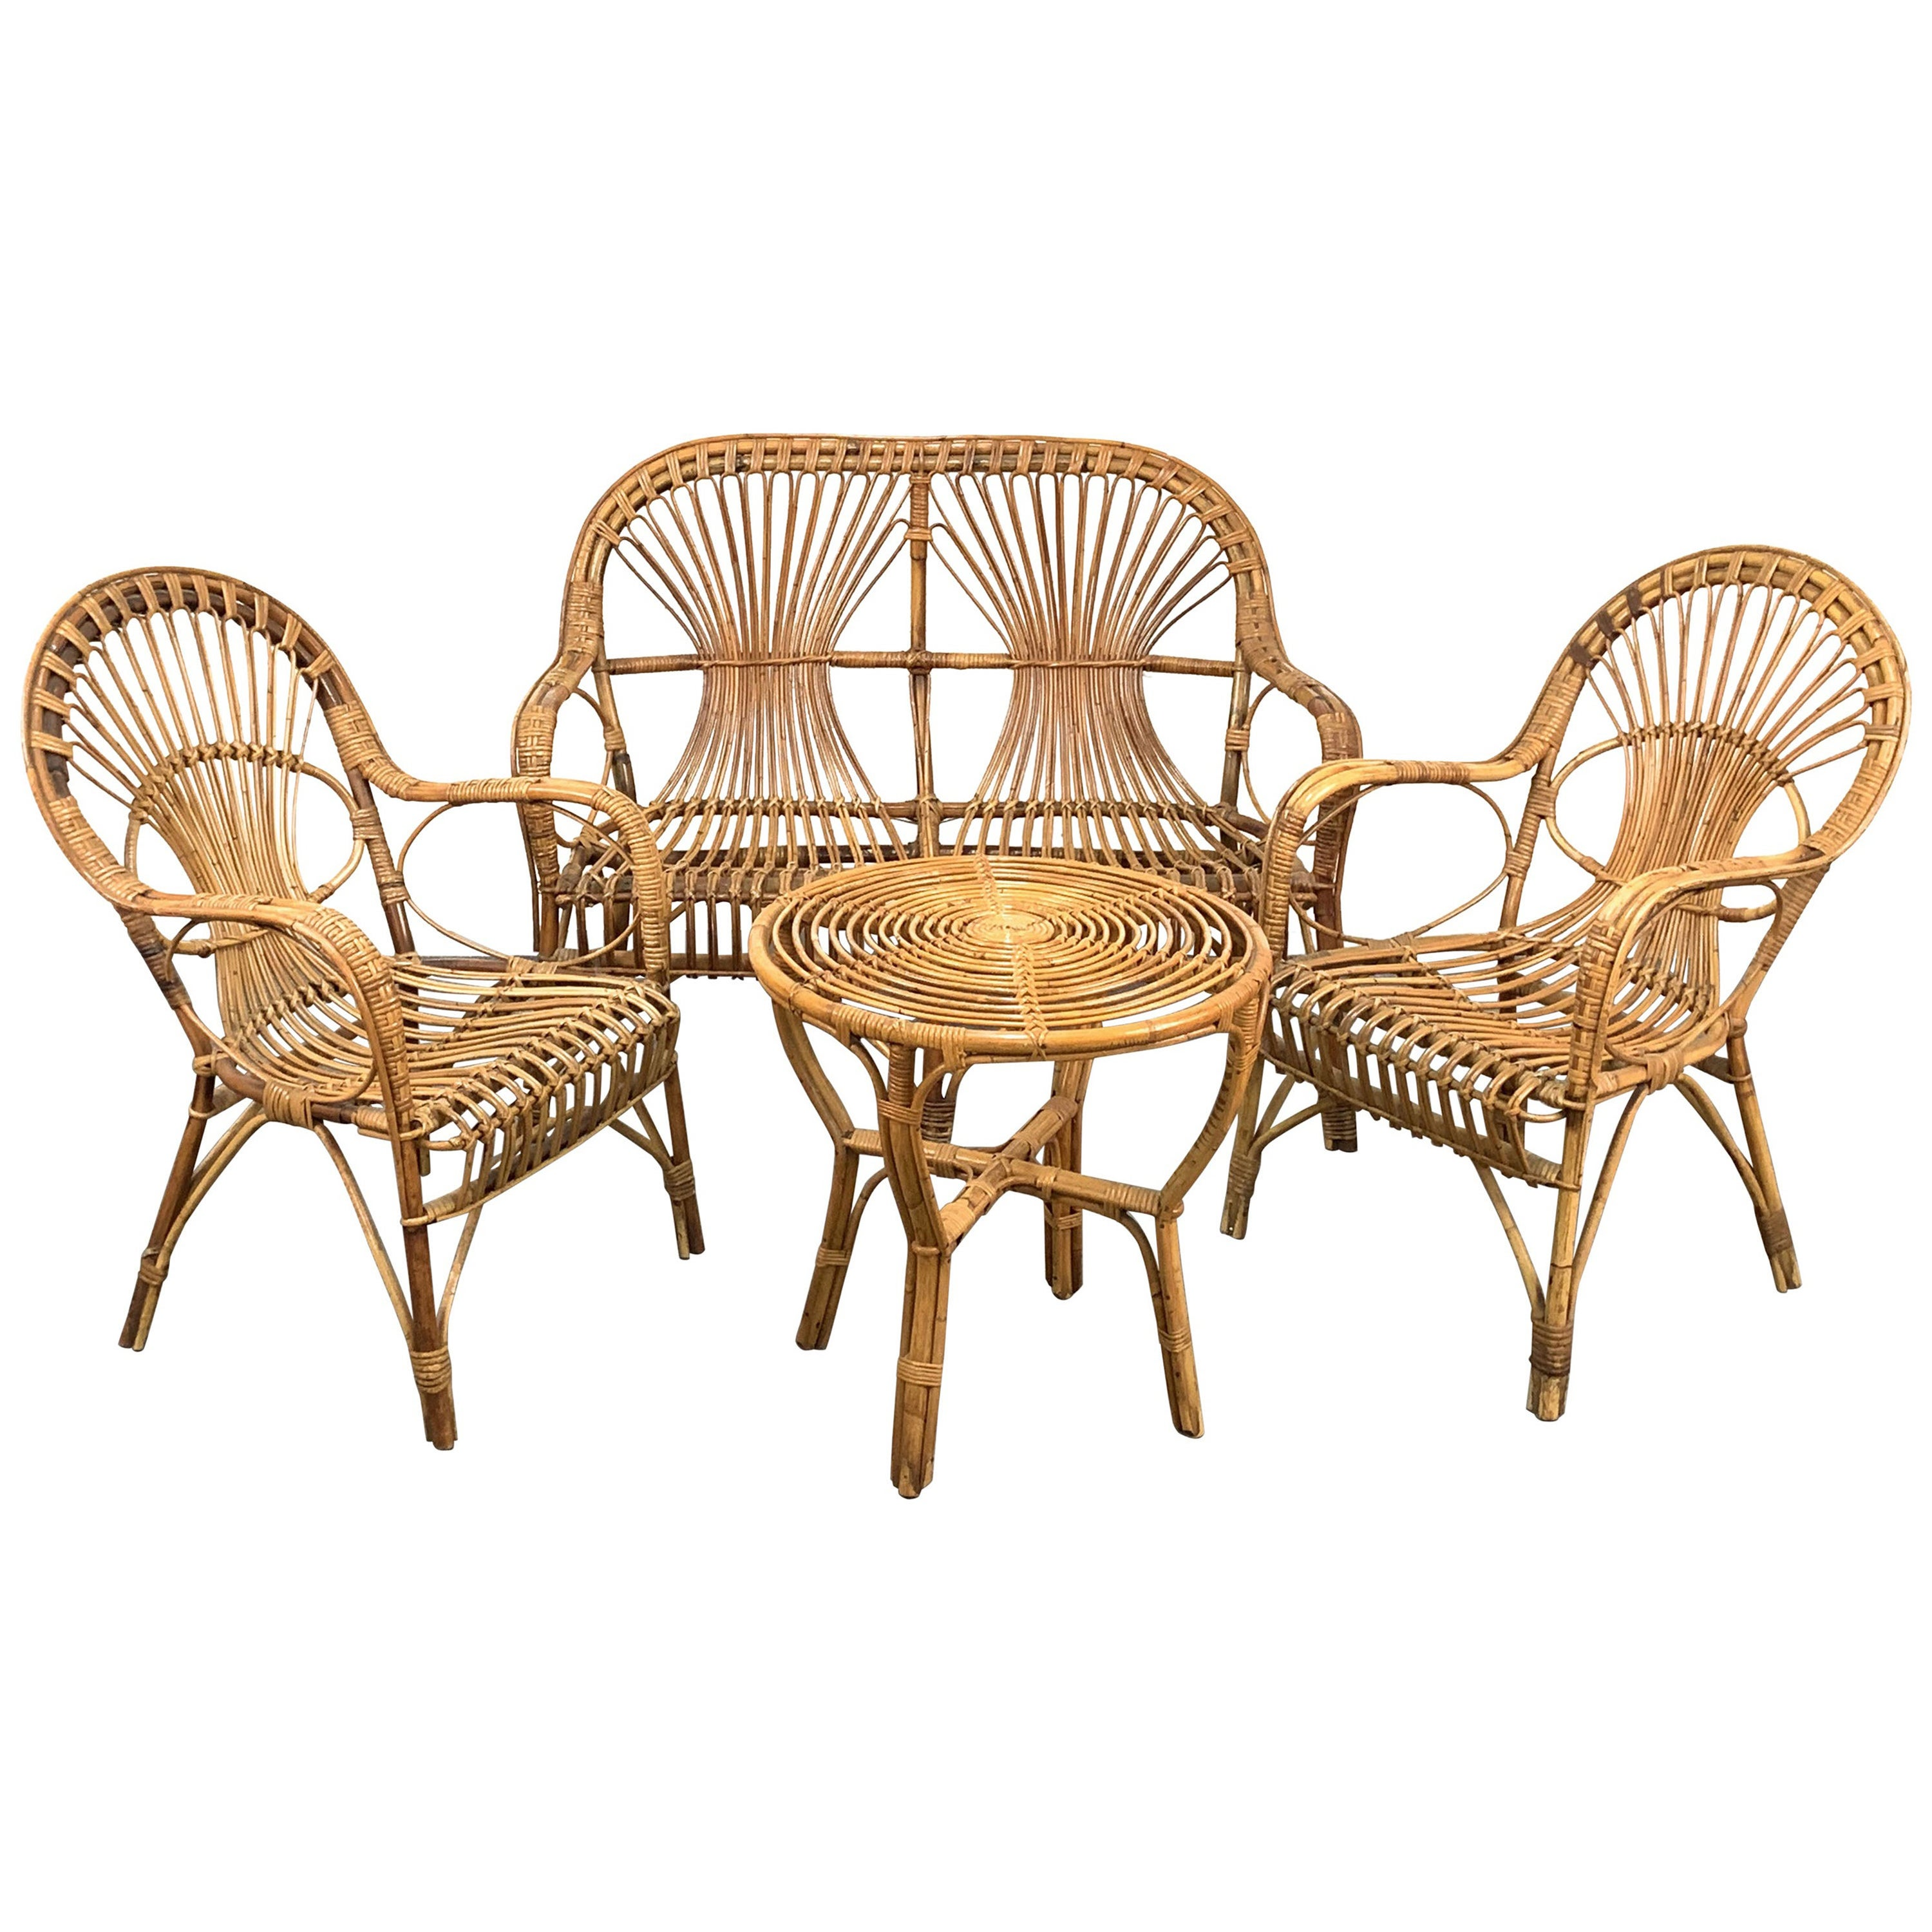 Midcentury Rattan and Bamboo Sofa, Armchairs and Italian Coffee Table, 1960s